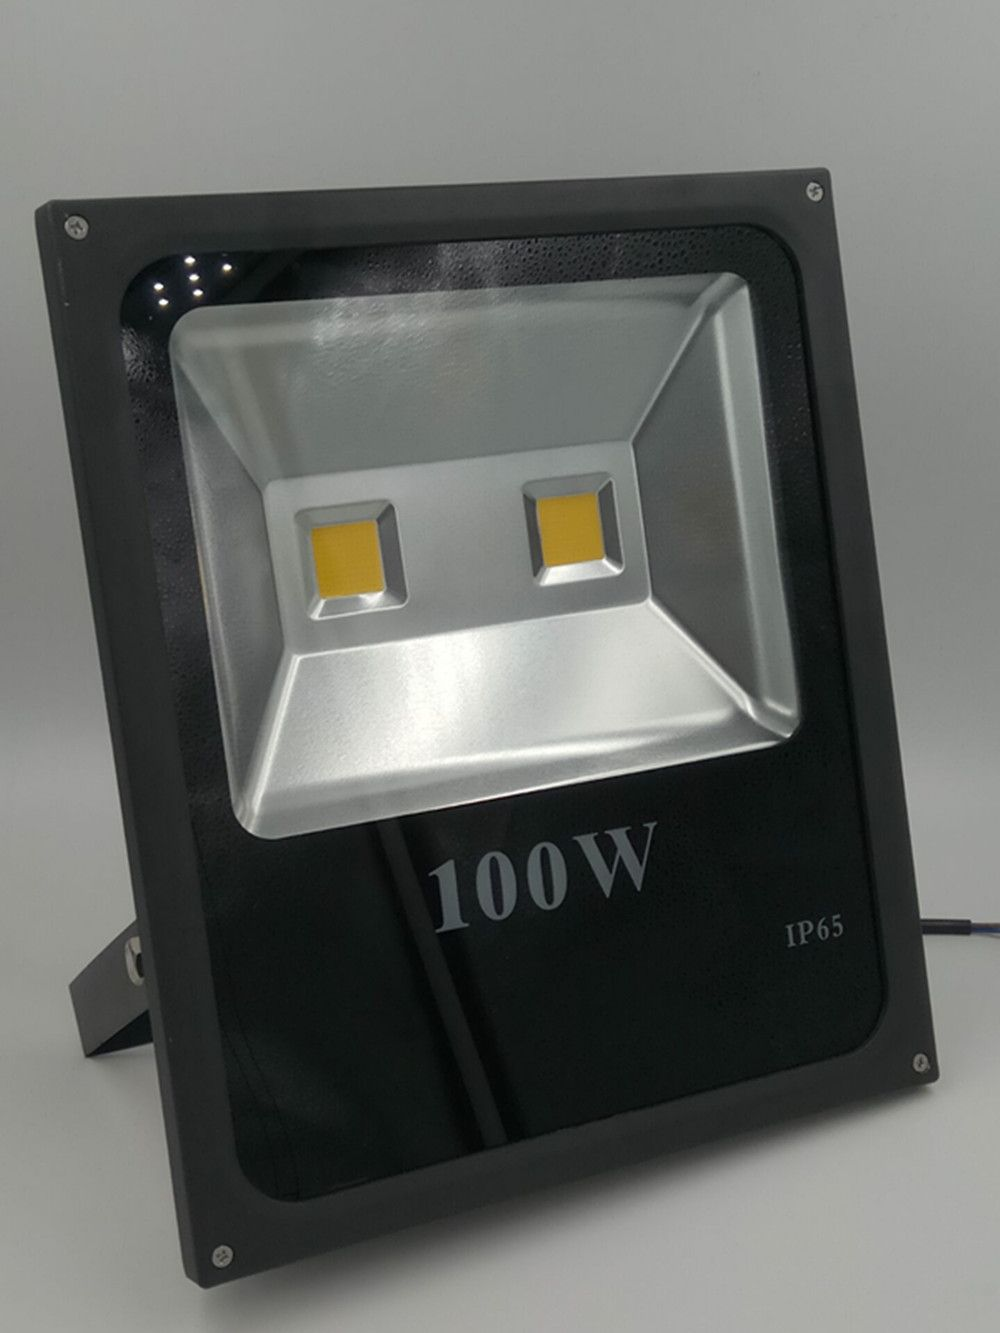 Led Outdoor Flood Light Bulbs Amusing Led Flood Light 100W Led Floodlight Ip65 Waterproof 220V 110V Led Design Ideas